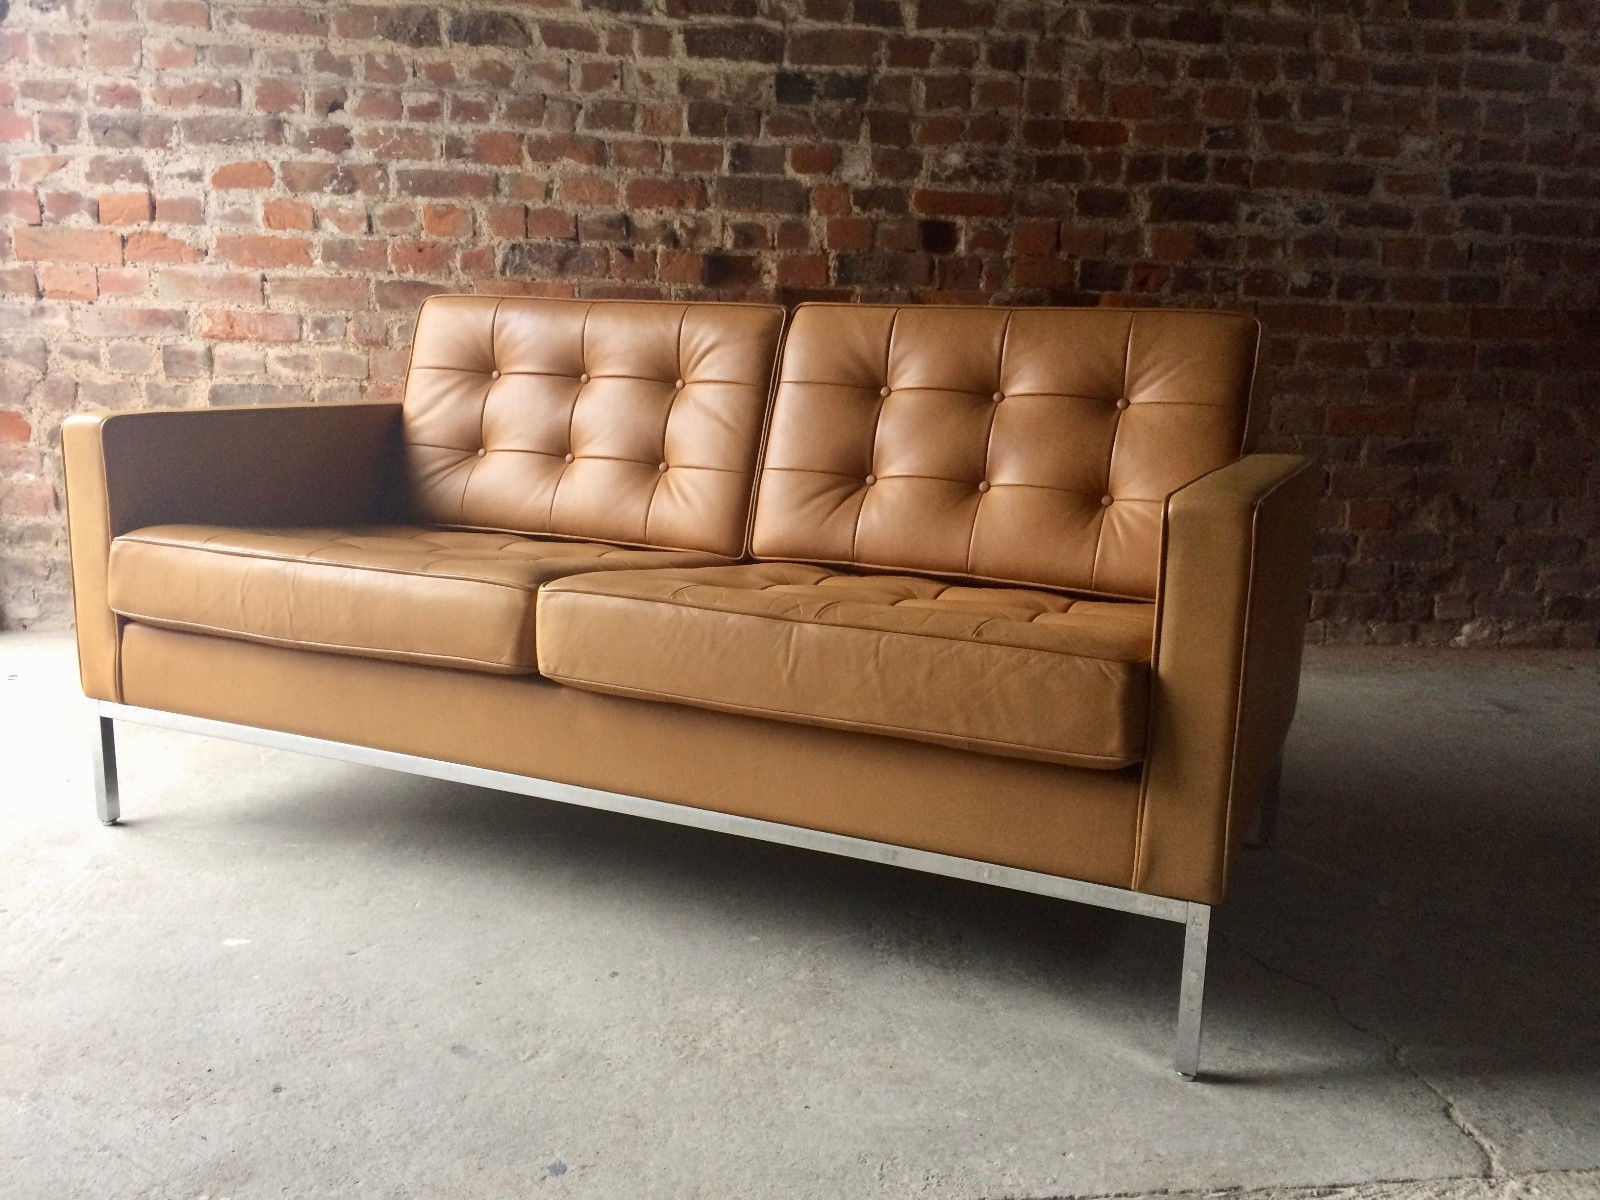 Vintage 2 Seater Leather Sofaflorence Knoll For Knoll For Sale With Newest Florence Leather Sofas (View 12 of 15)